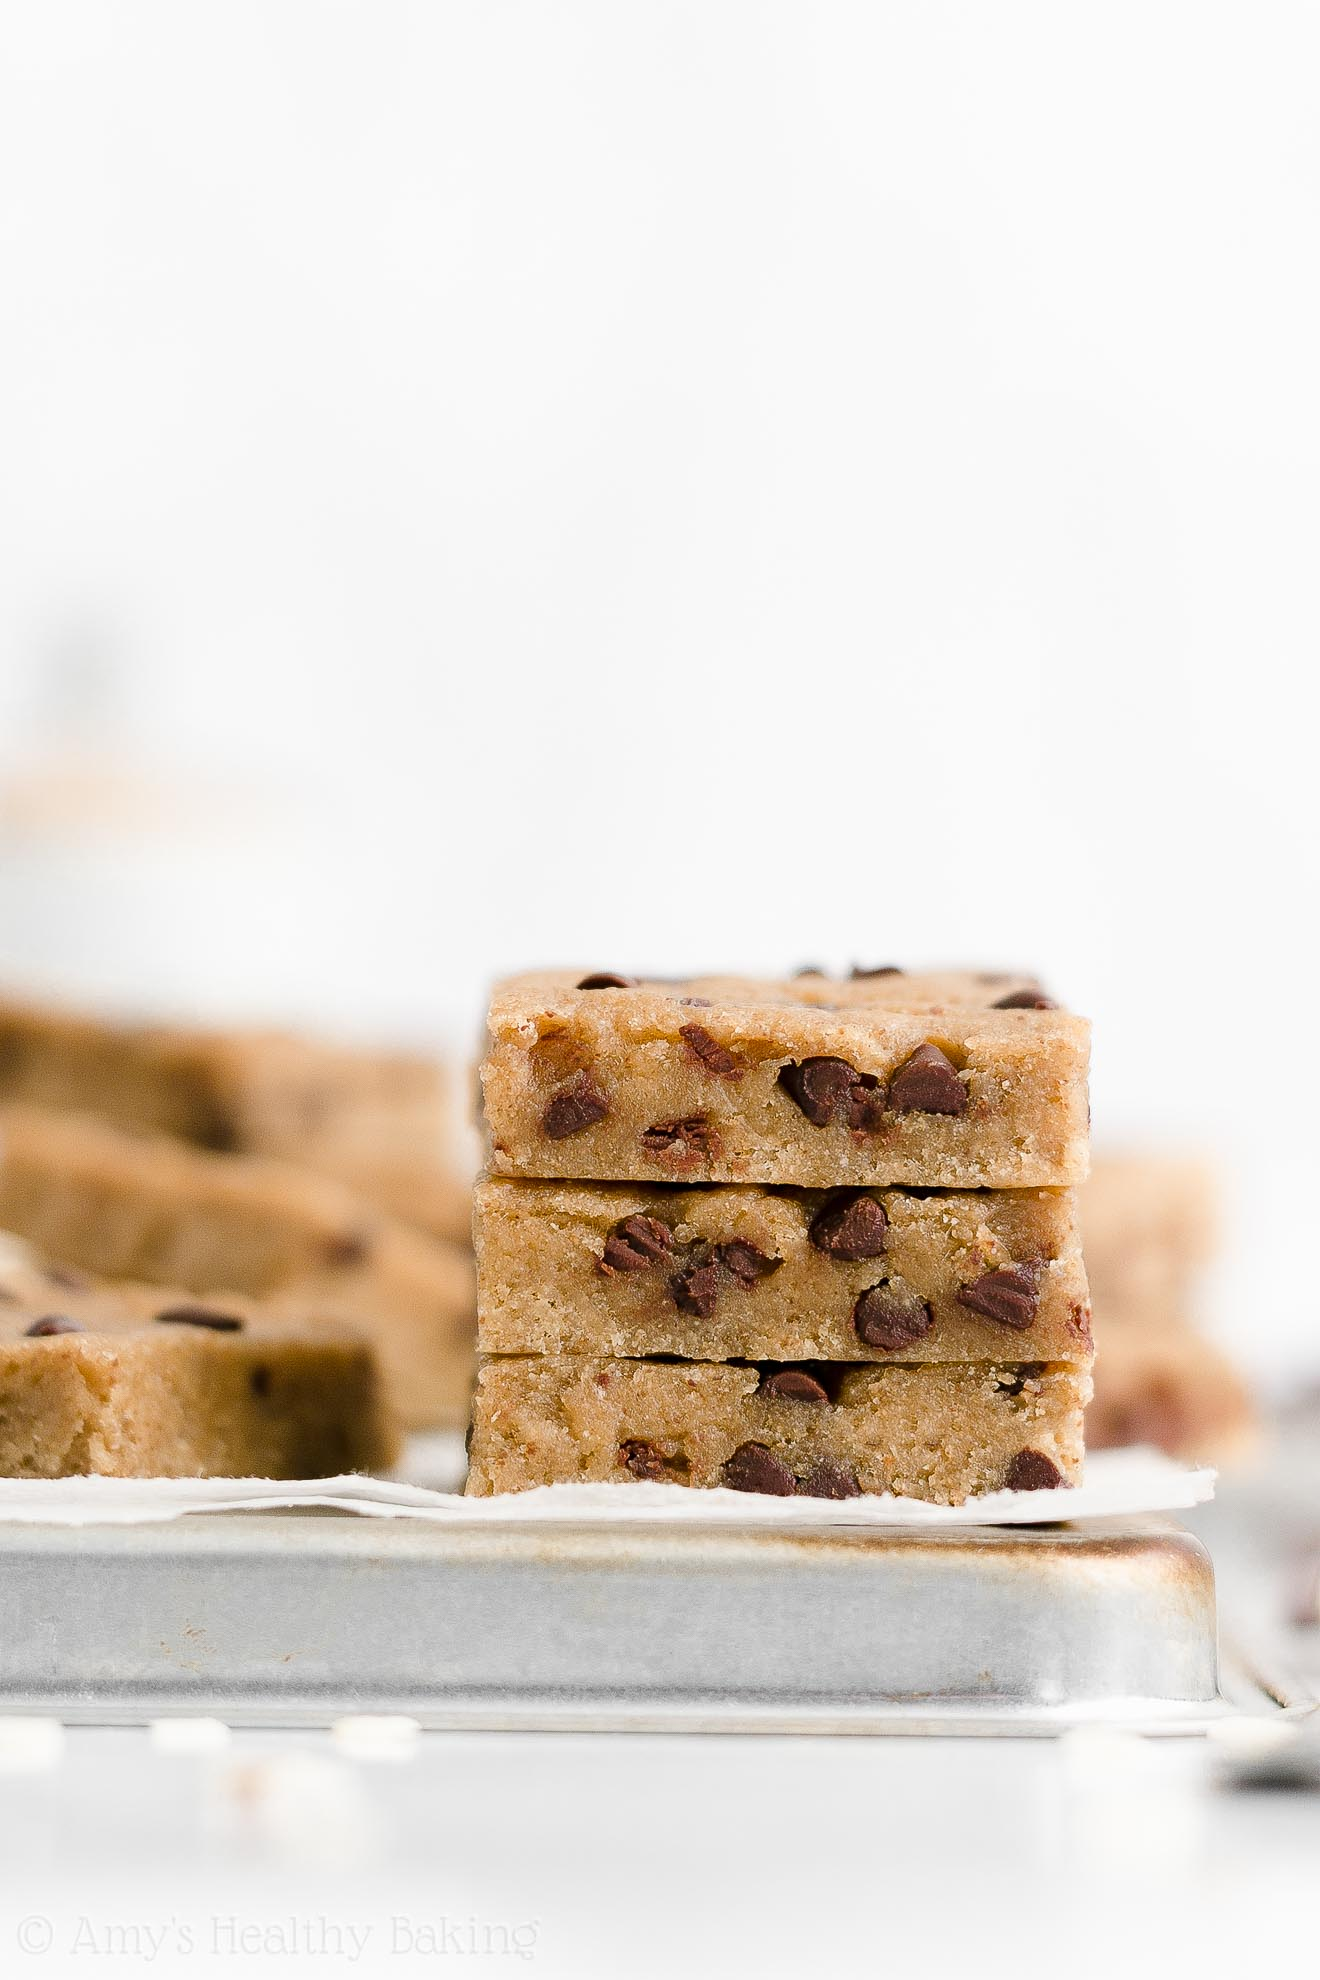 Healthy Gluten Free Sugar Free Oat Flour Chocolate Chip Almond Butter Cookie Bars